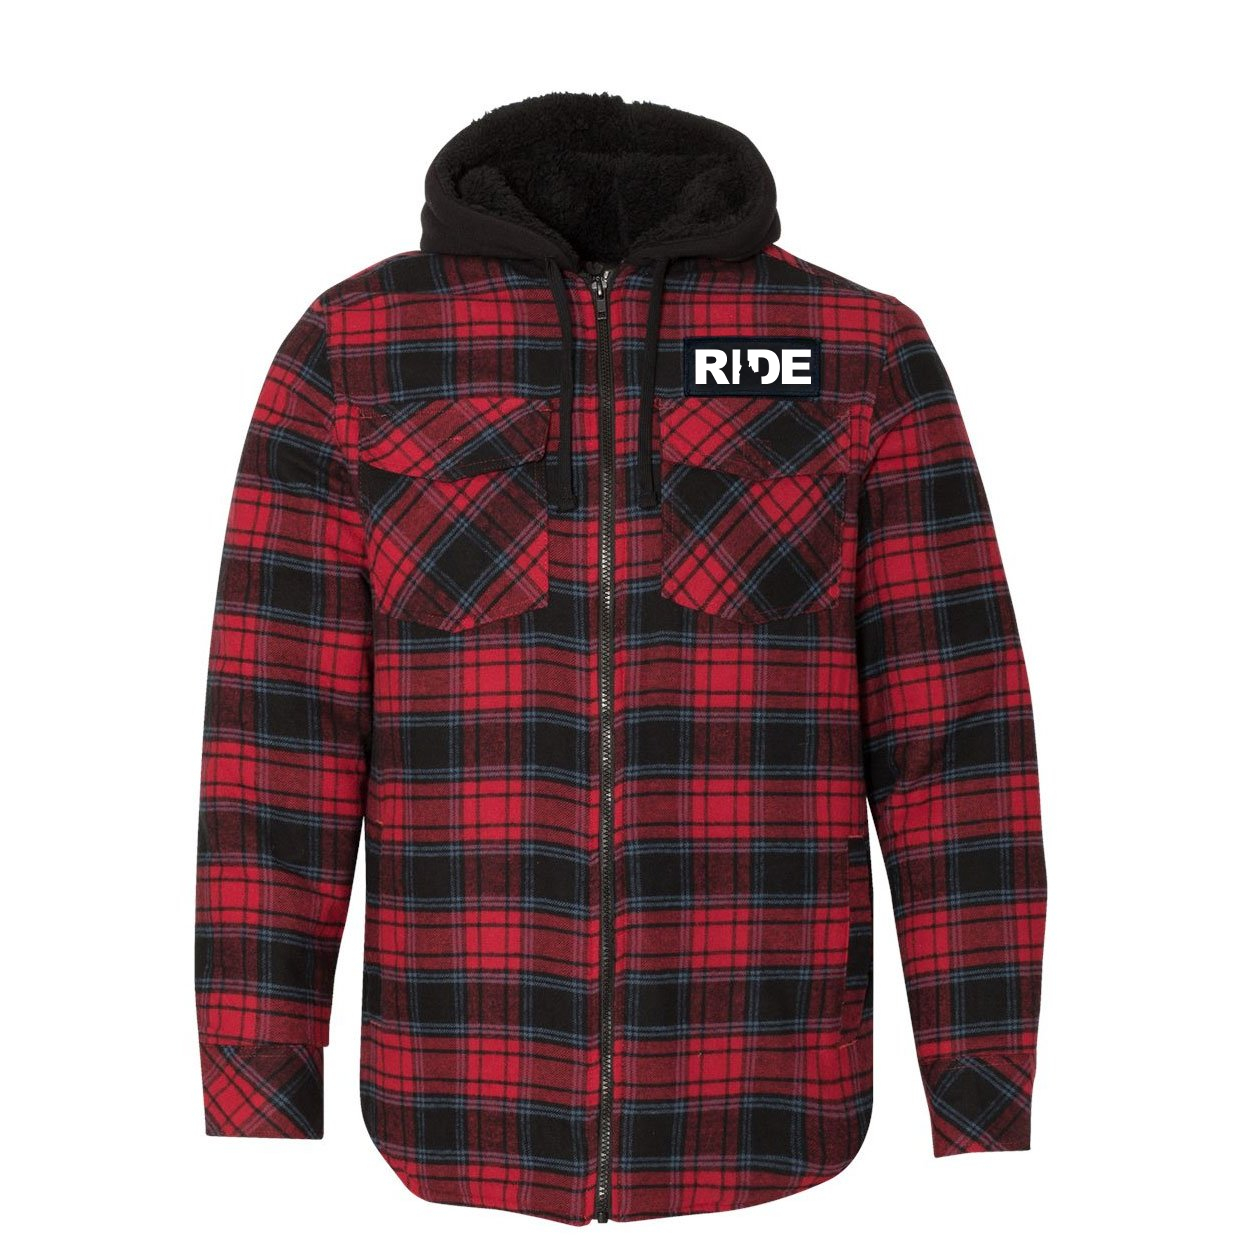 Ride Idaho Classic Unisex Full Zip Woven Patch Hooded Flannel Jacket Red/Black Buffalo (White Logo)